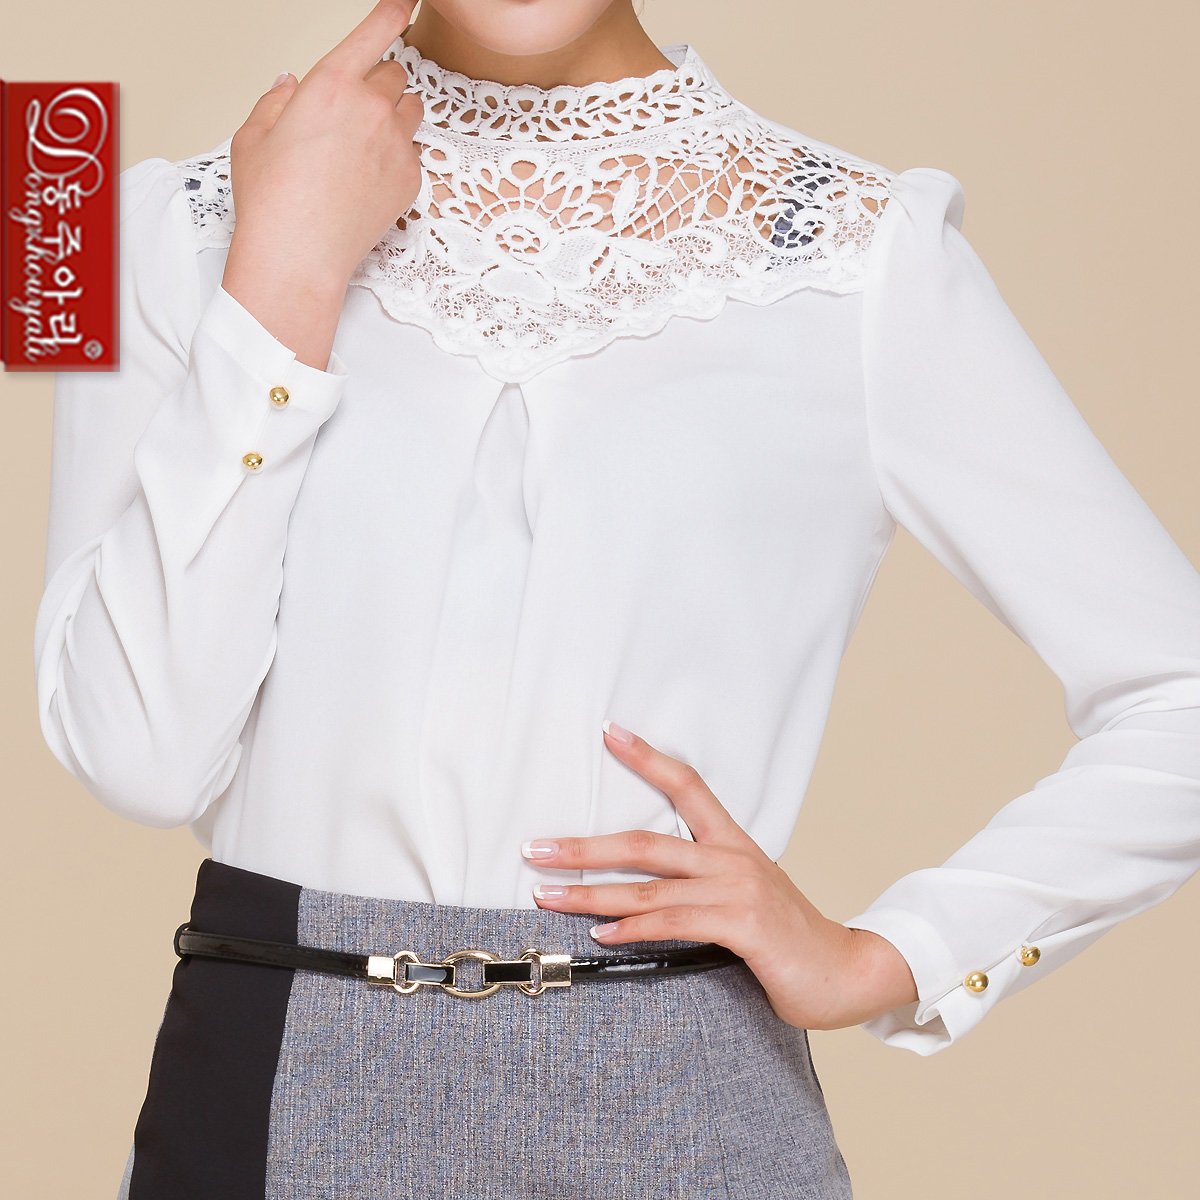 sale frees hipping plus size lady long-sleeve shirts women fahionable elegant formal white lace collar turtleneck - Fashion and Romantic Store store